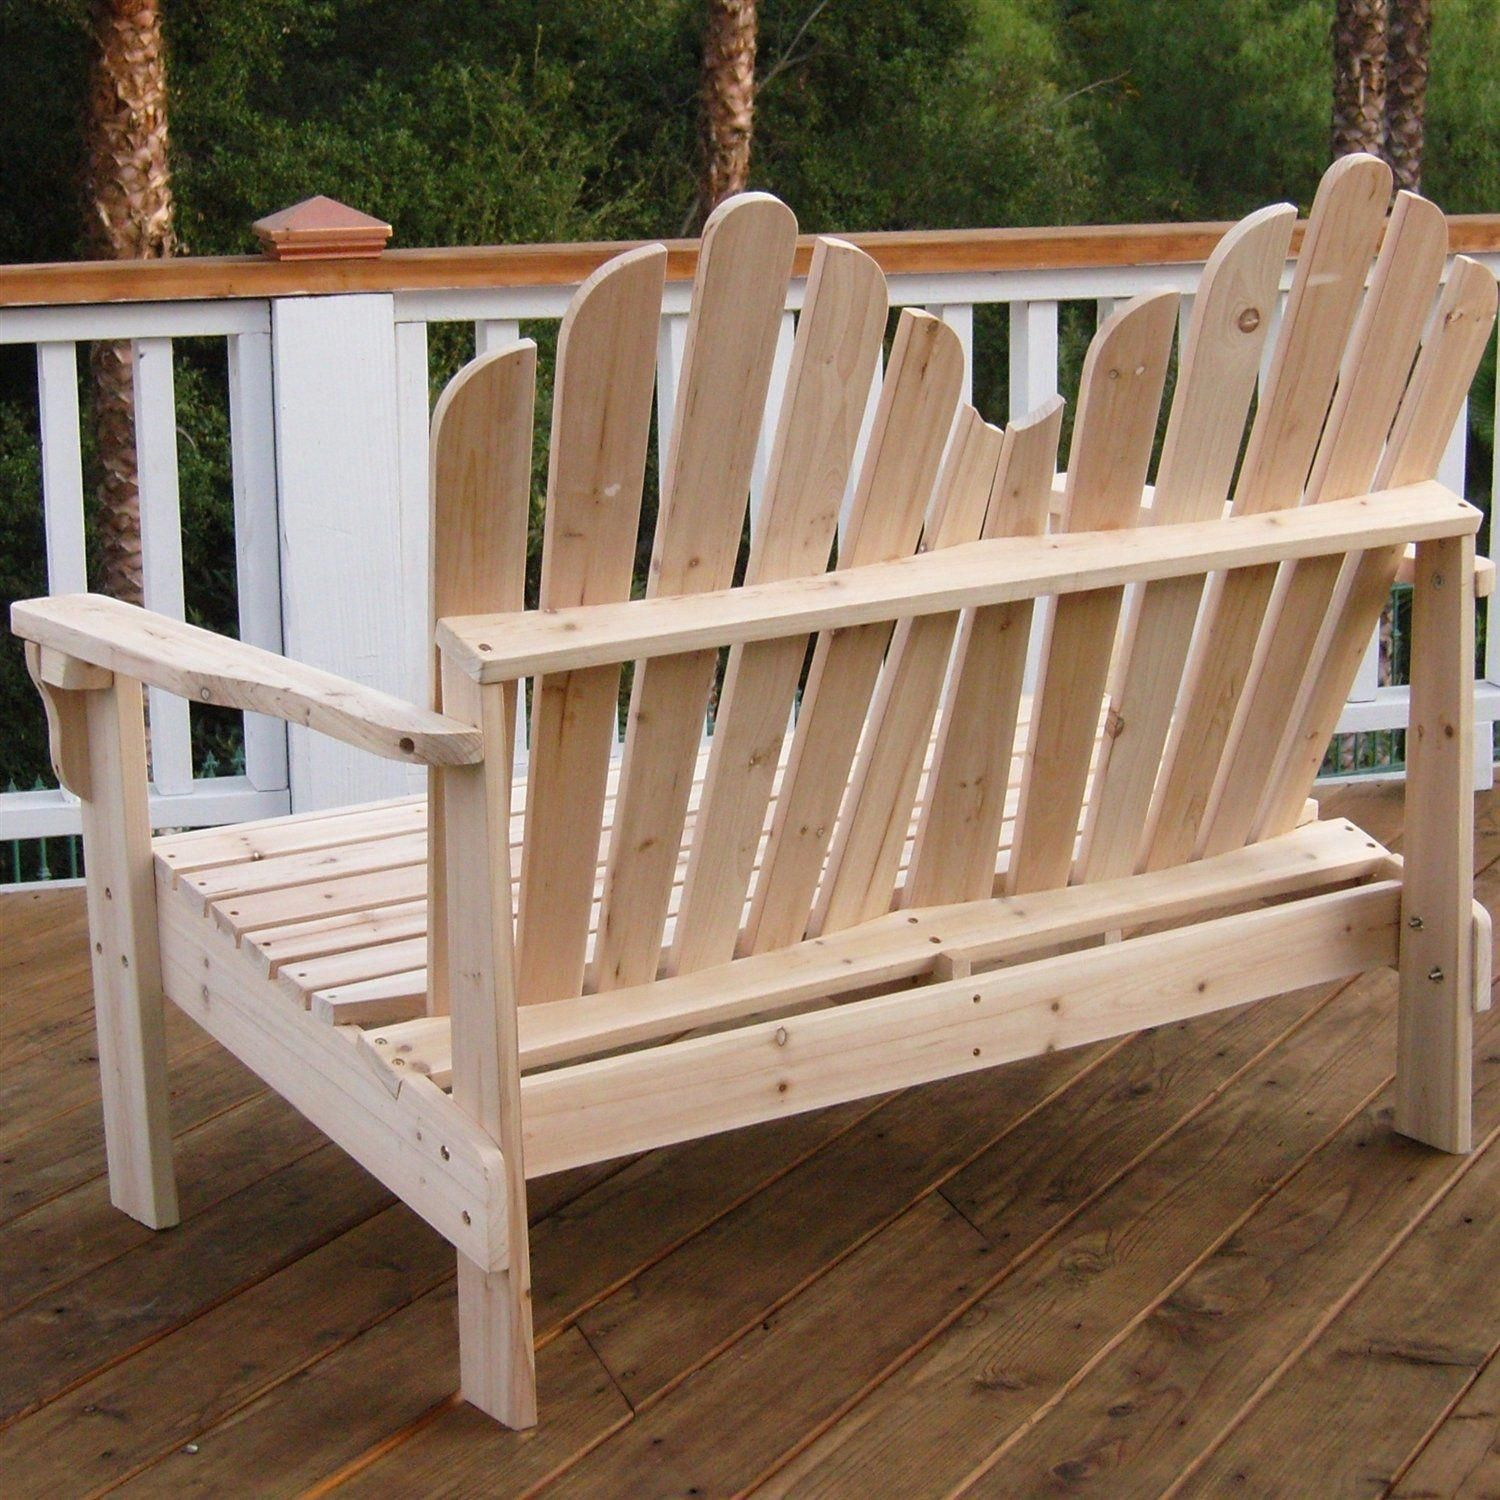 This 2 Seat Adirondack Style Outdoor Cedar Wood Garden Bench Inside 2 Person Natural Cedar Wood Outdoor Gliders (View 8 of 25)